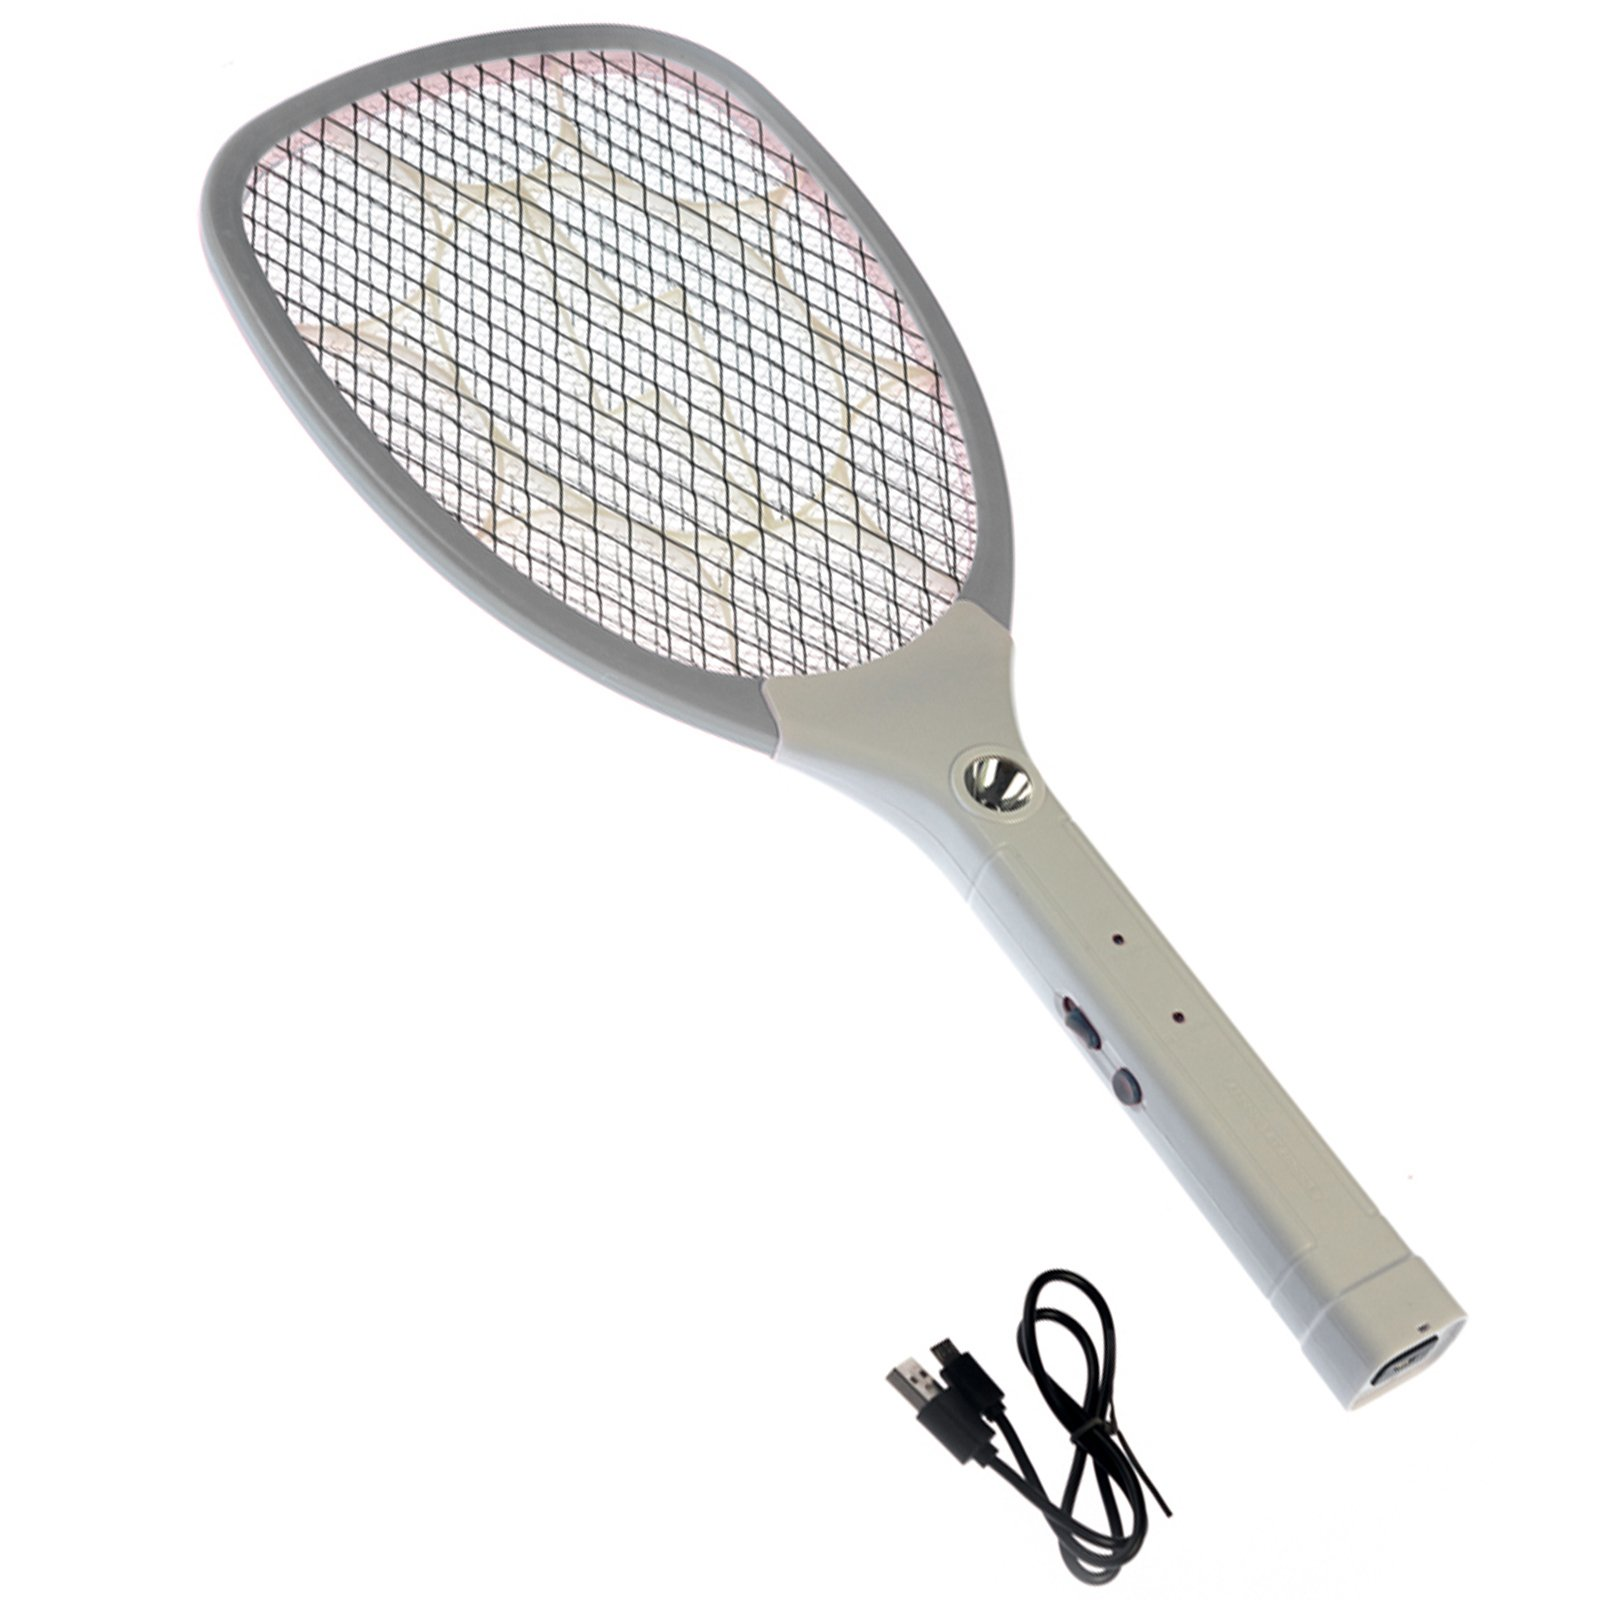 ASR Outdoor Handheld Micro USB Rechargeable Bug Zapper Flashlight Paddle - Grey